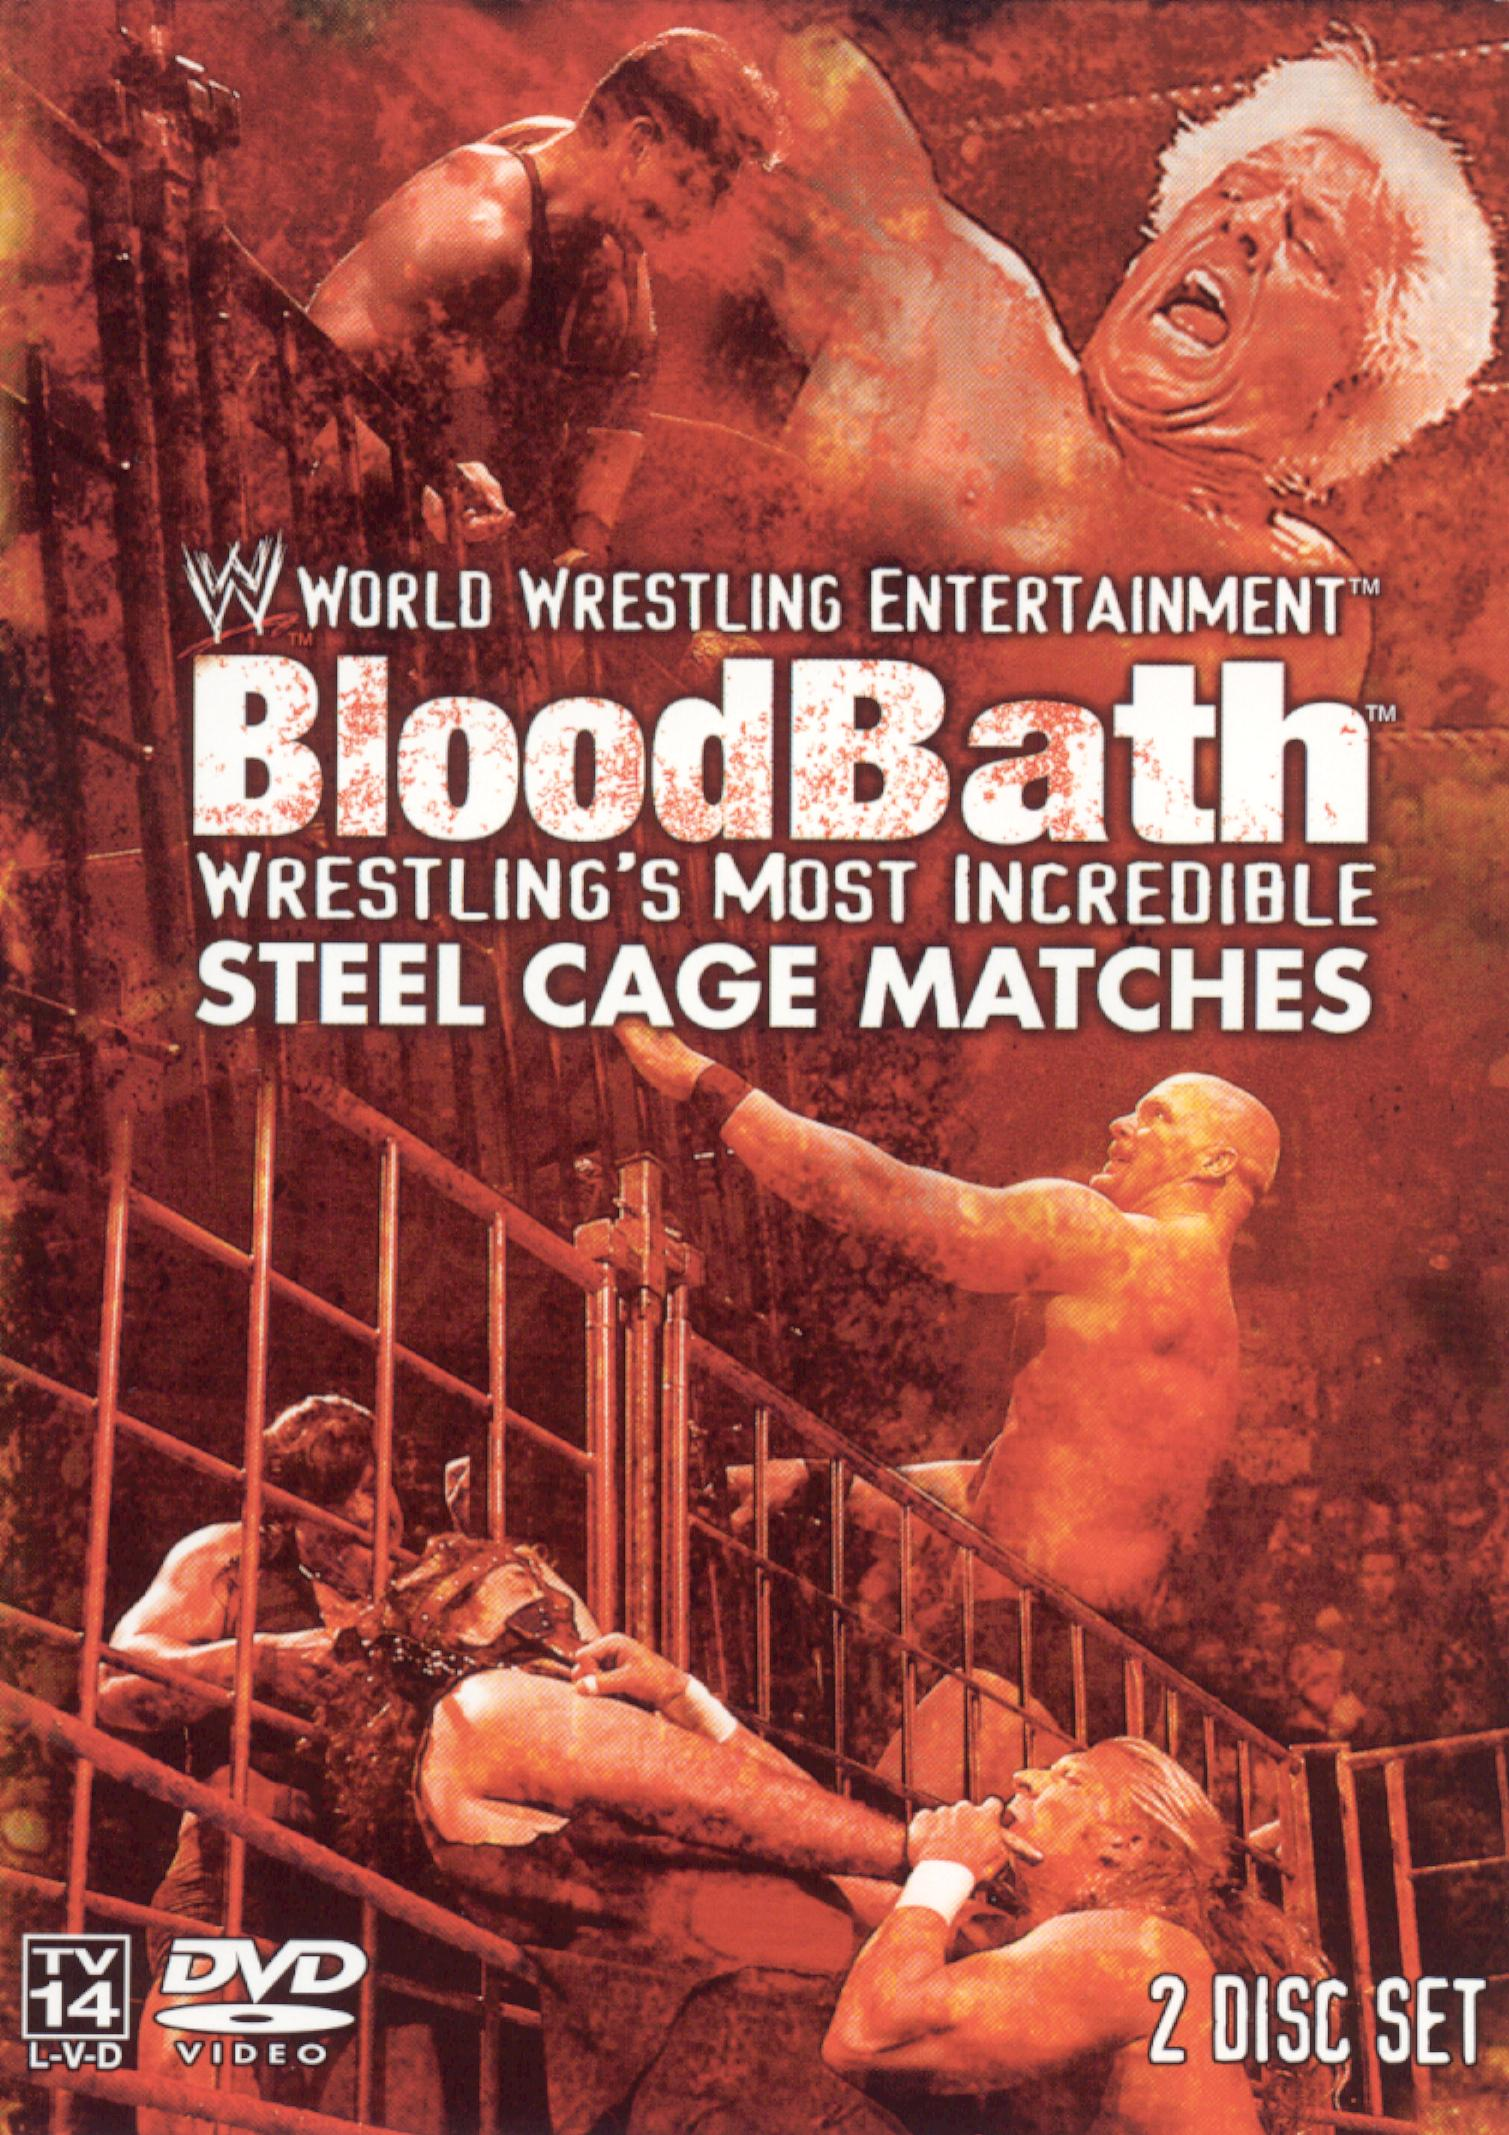 WWE: Bloodbath - Wrestling's Most Incredible Steel Cage Matches